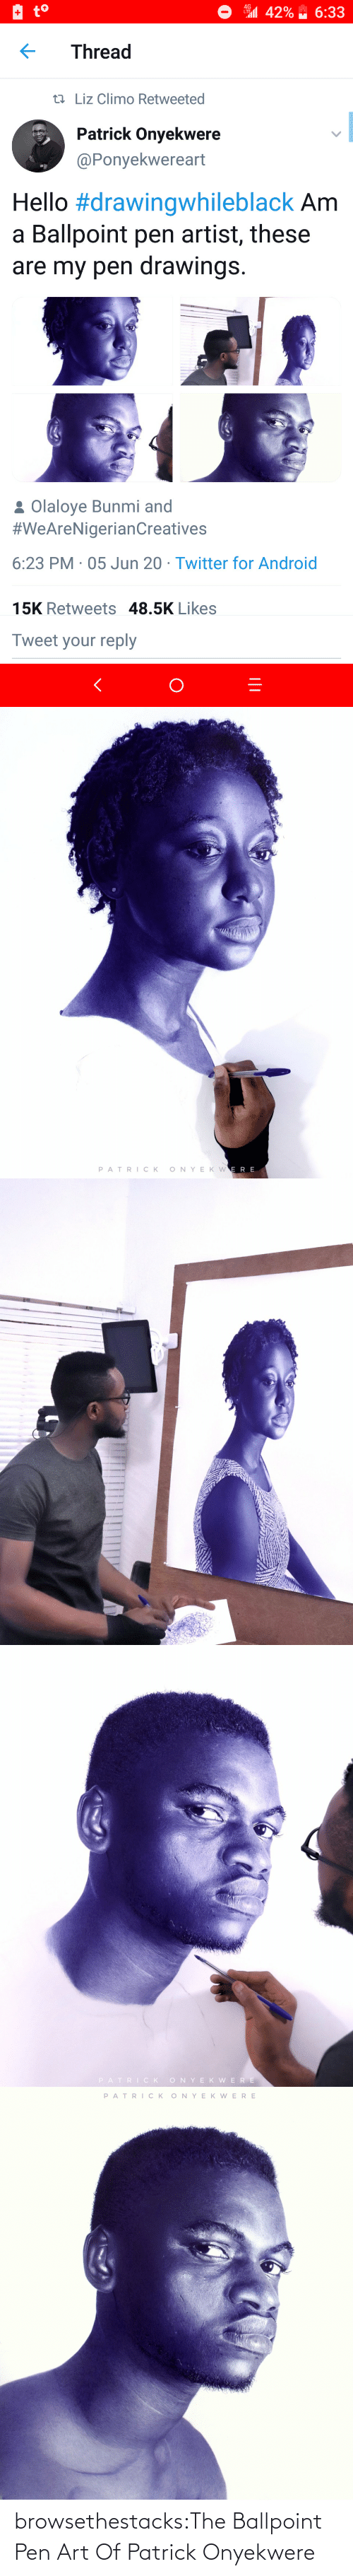 Twitter: browsethestacks:The Ballpoint Pen Art Of Patrick Onyekwere